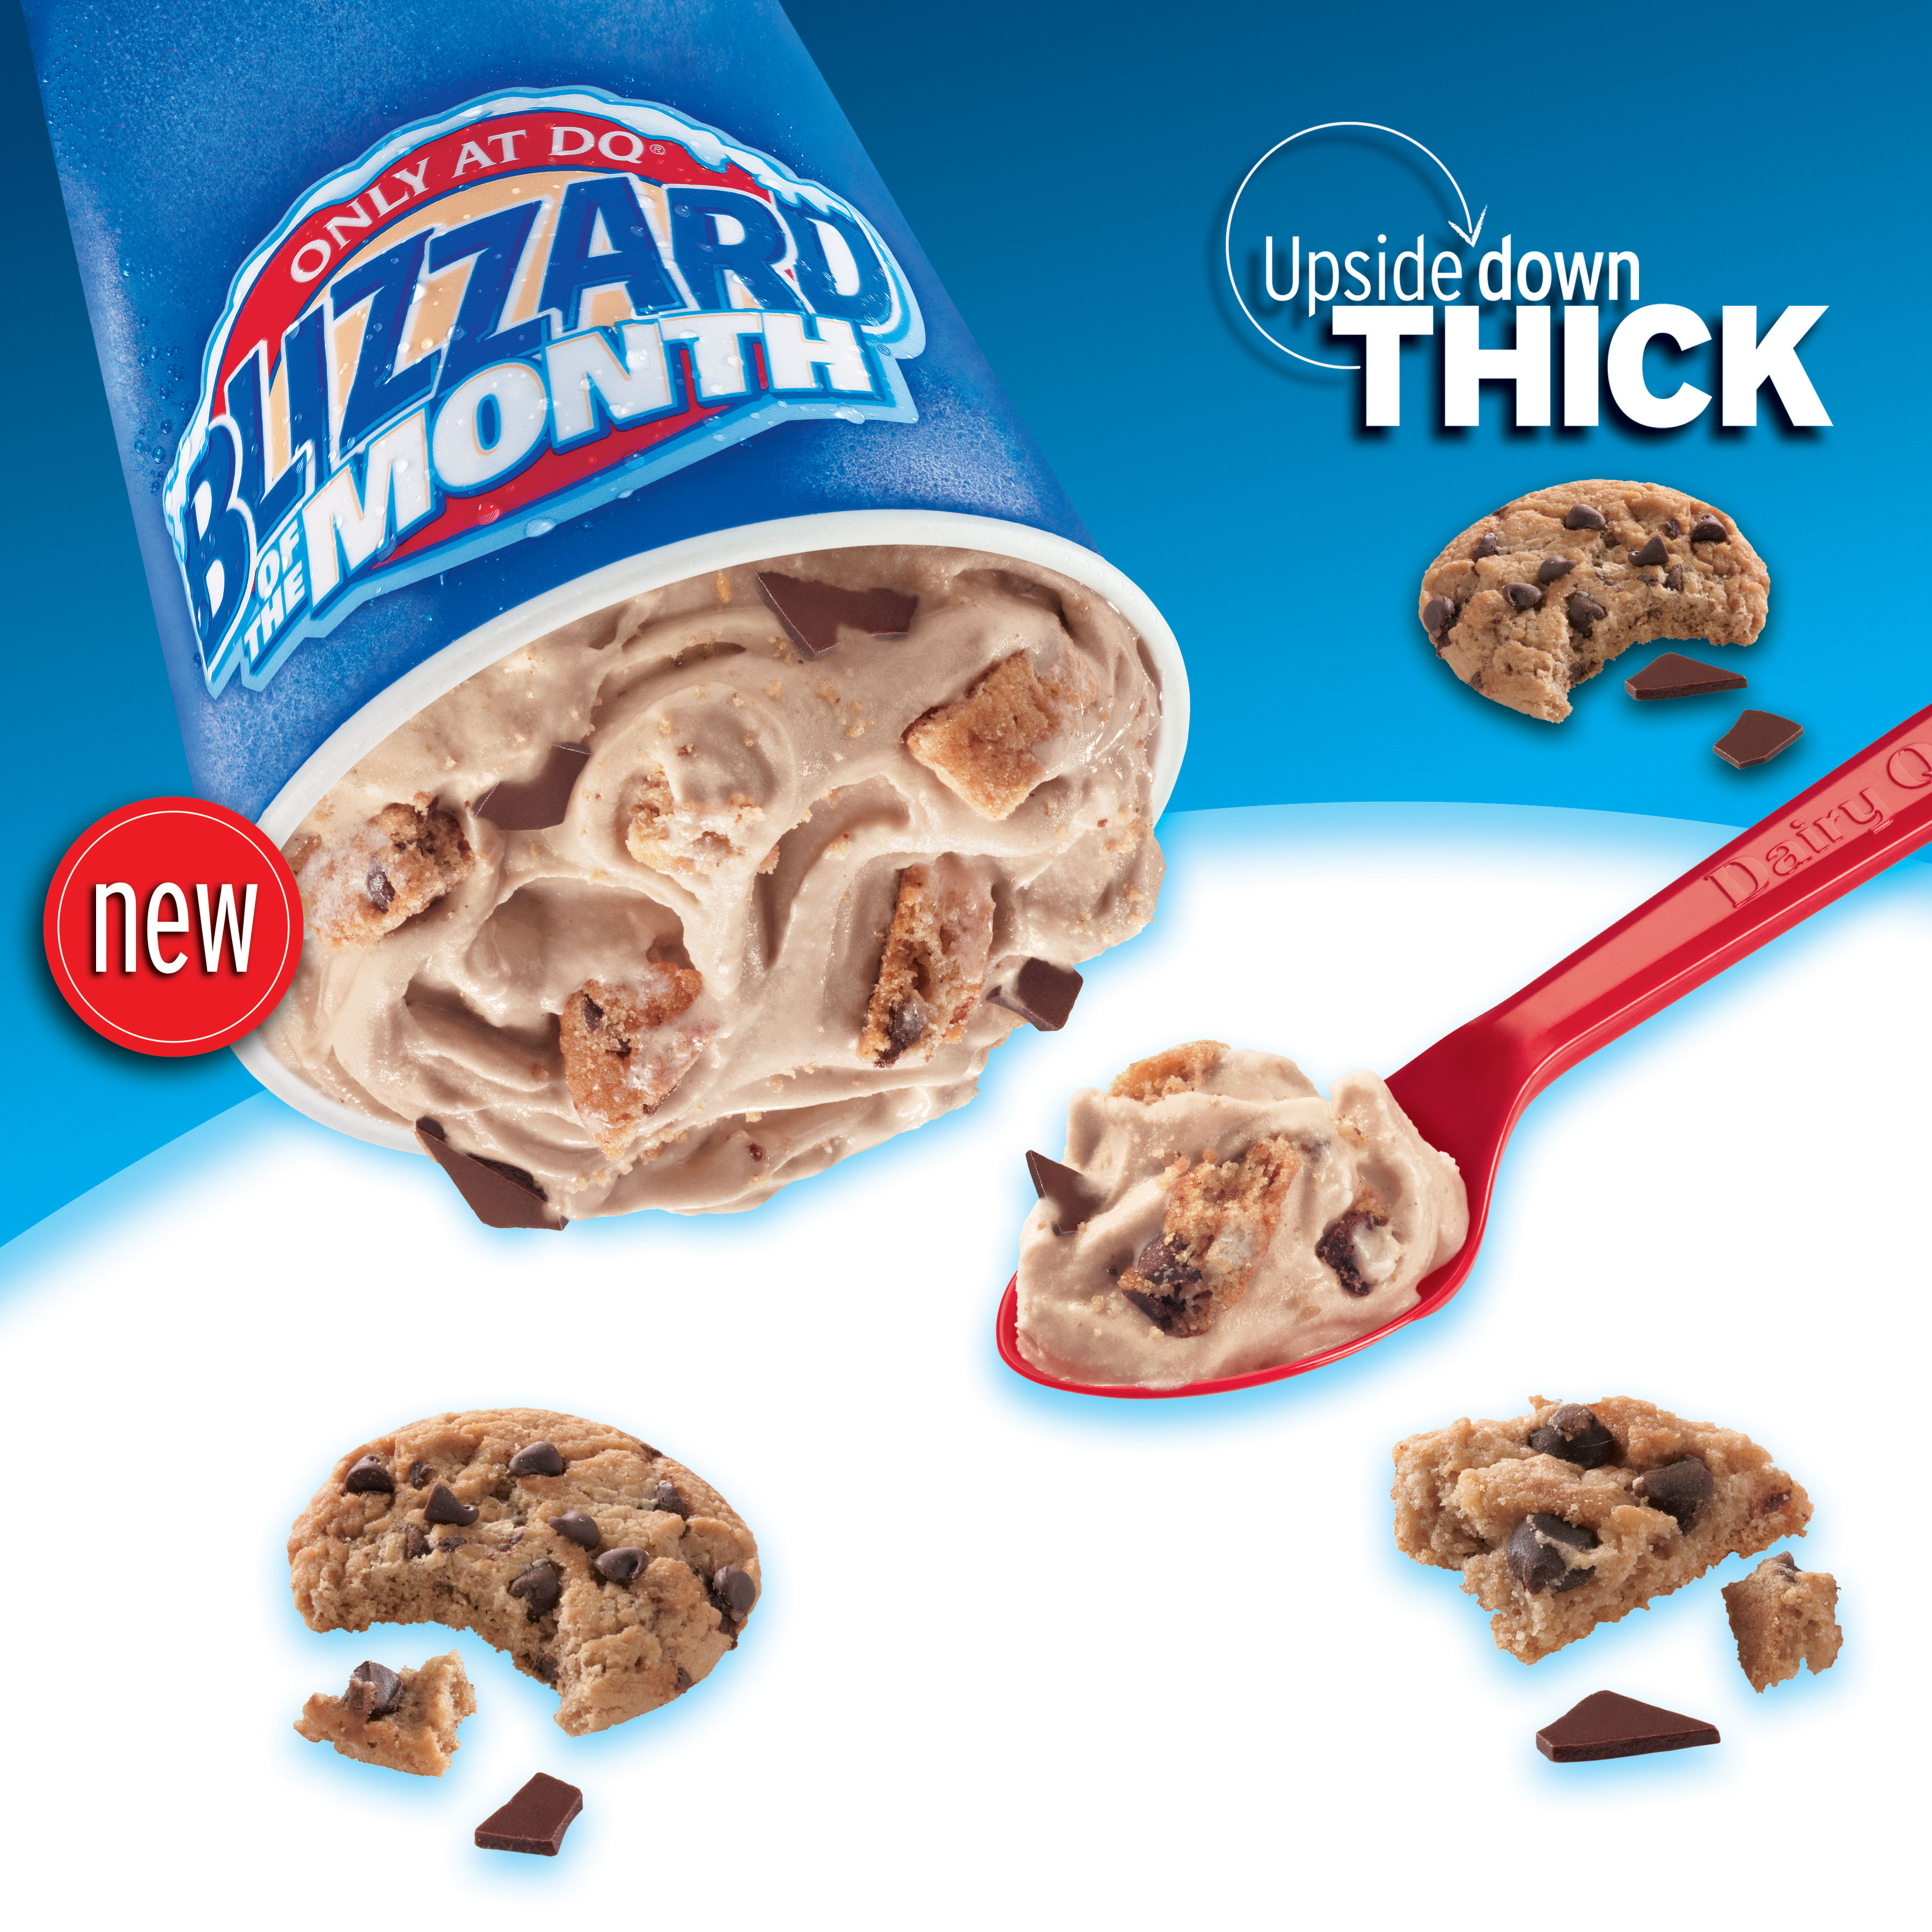 New Chips Ahoy!® Blizzard Treat, DQ Blizzard of the Month for August (Photo: Business Wire)